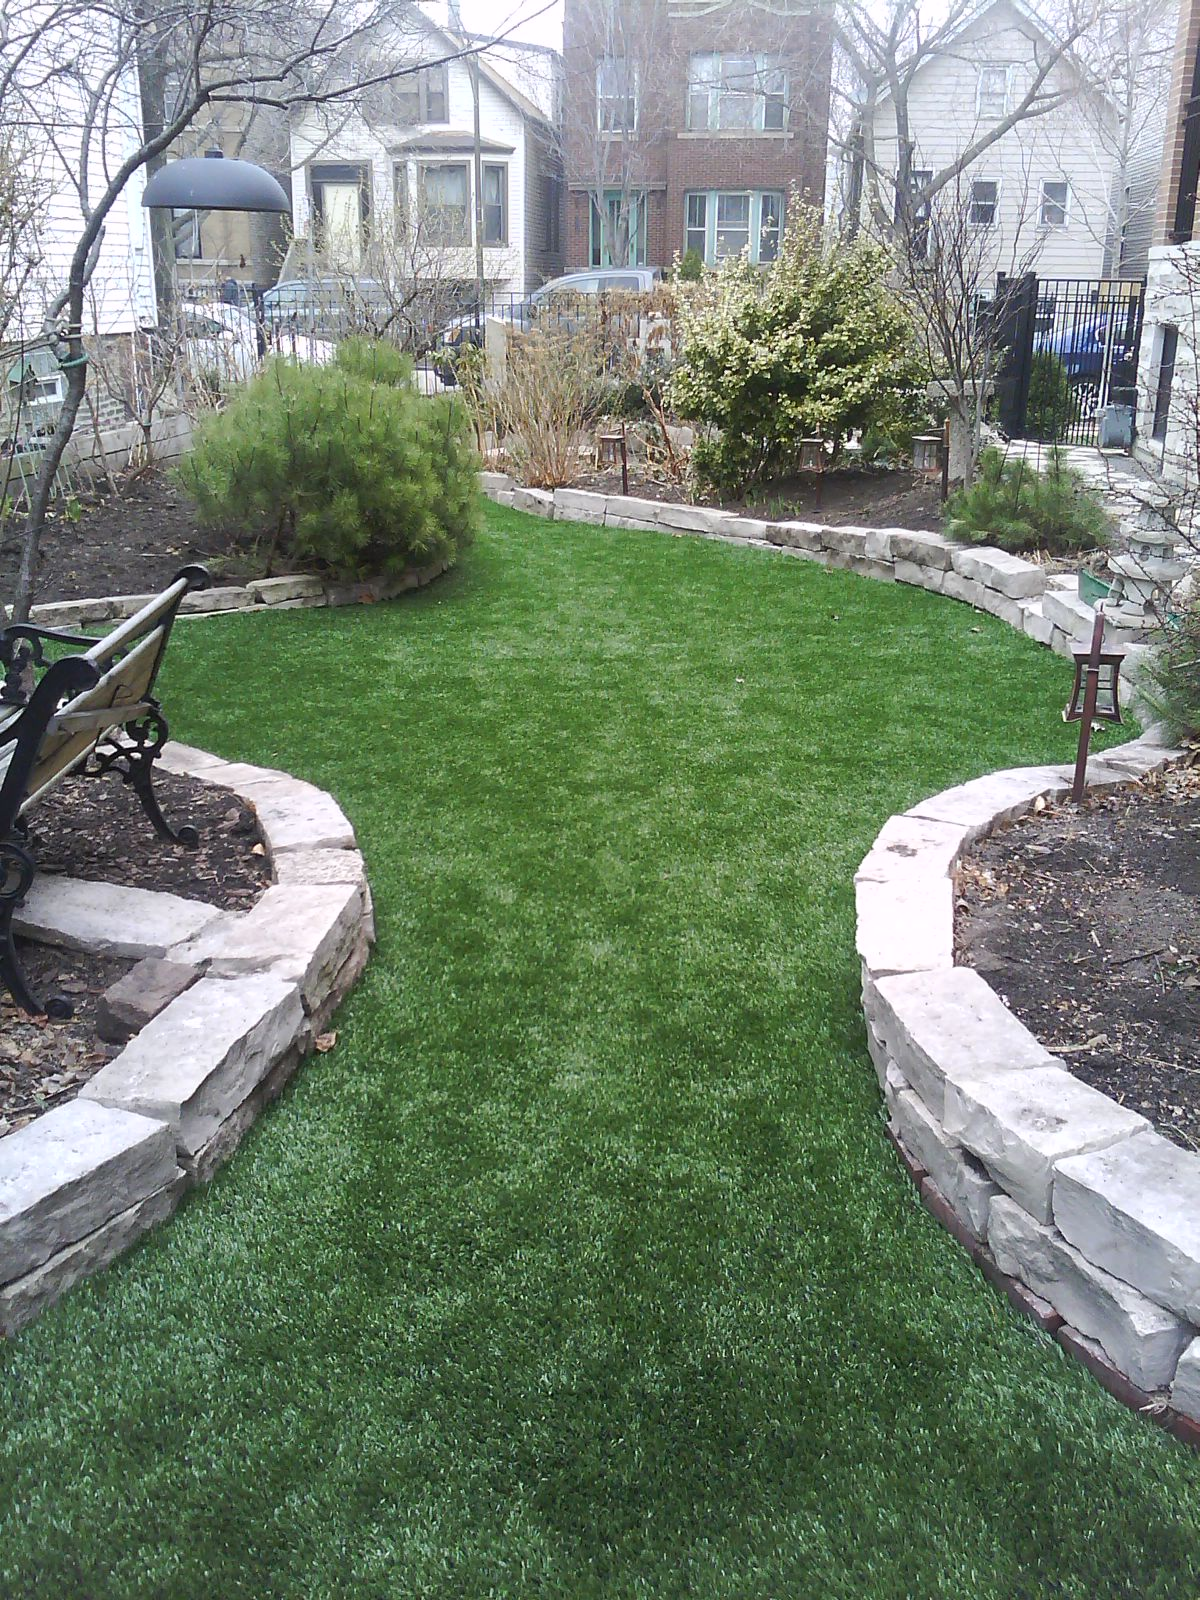 Backyard artificial grass installation in Chicago with stone retainer walls